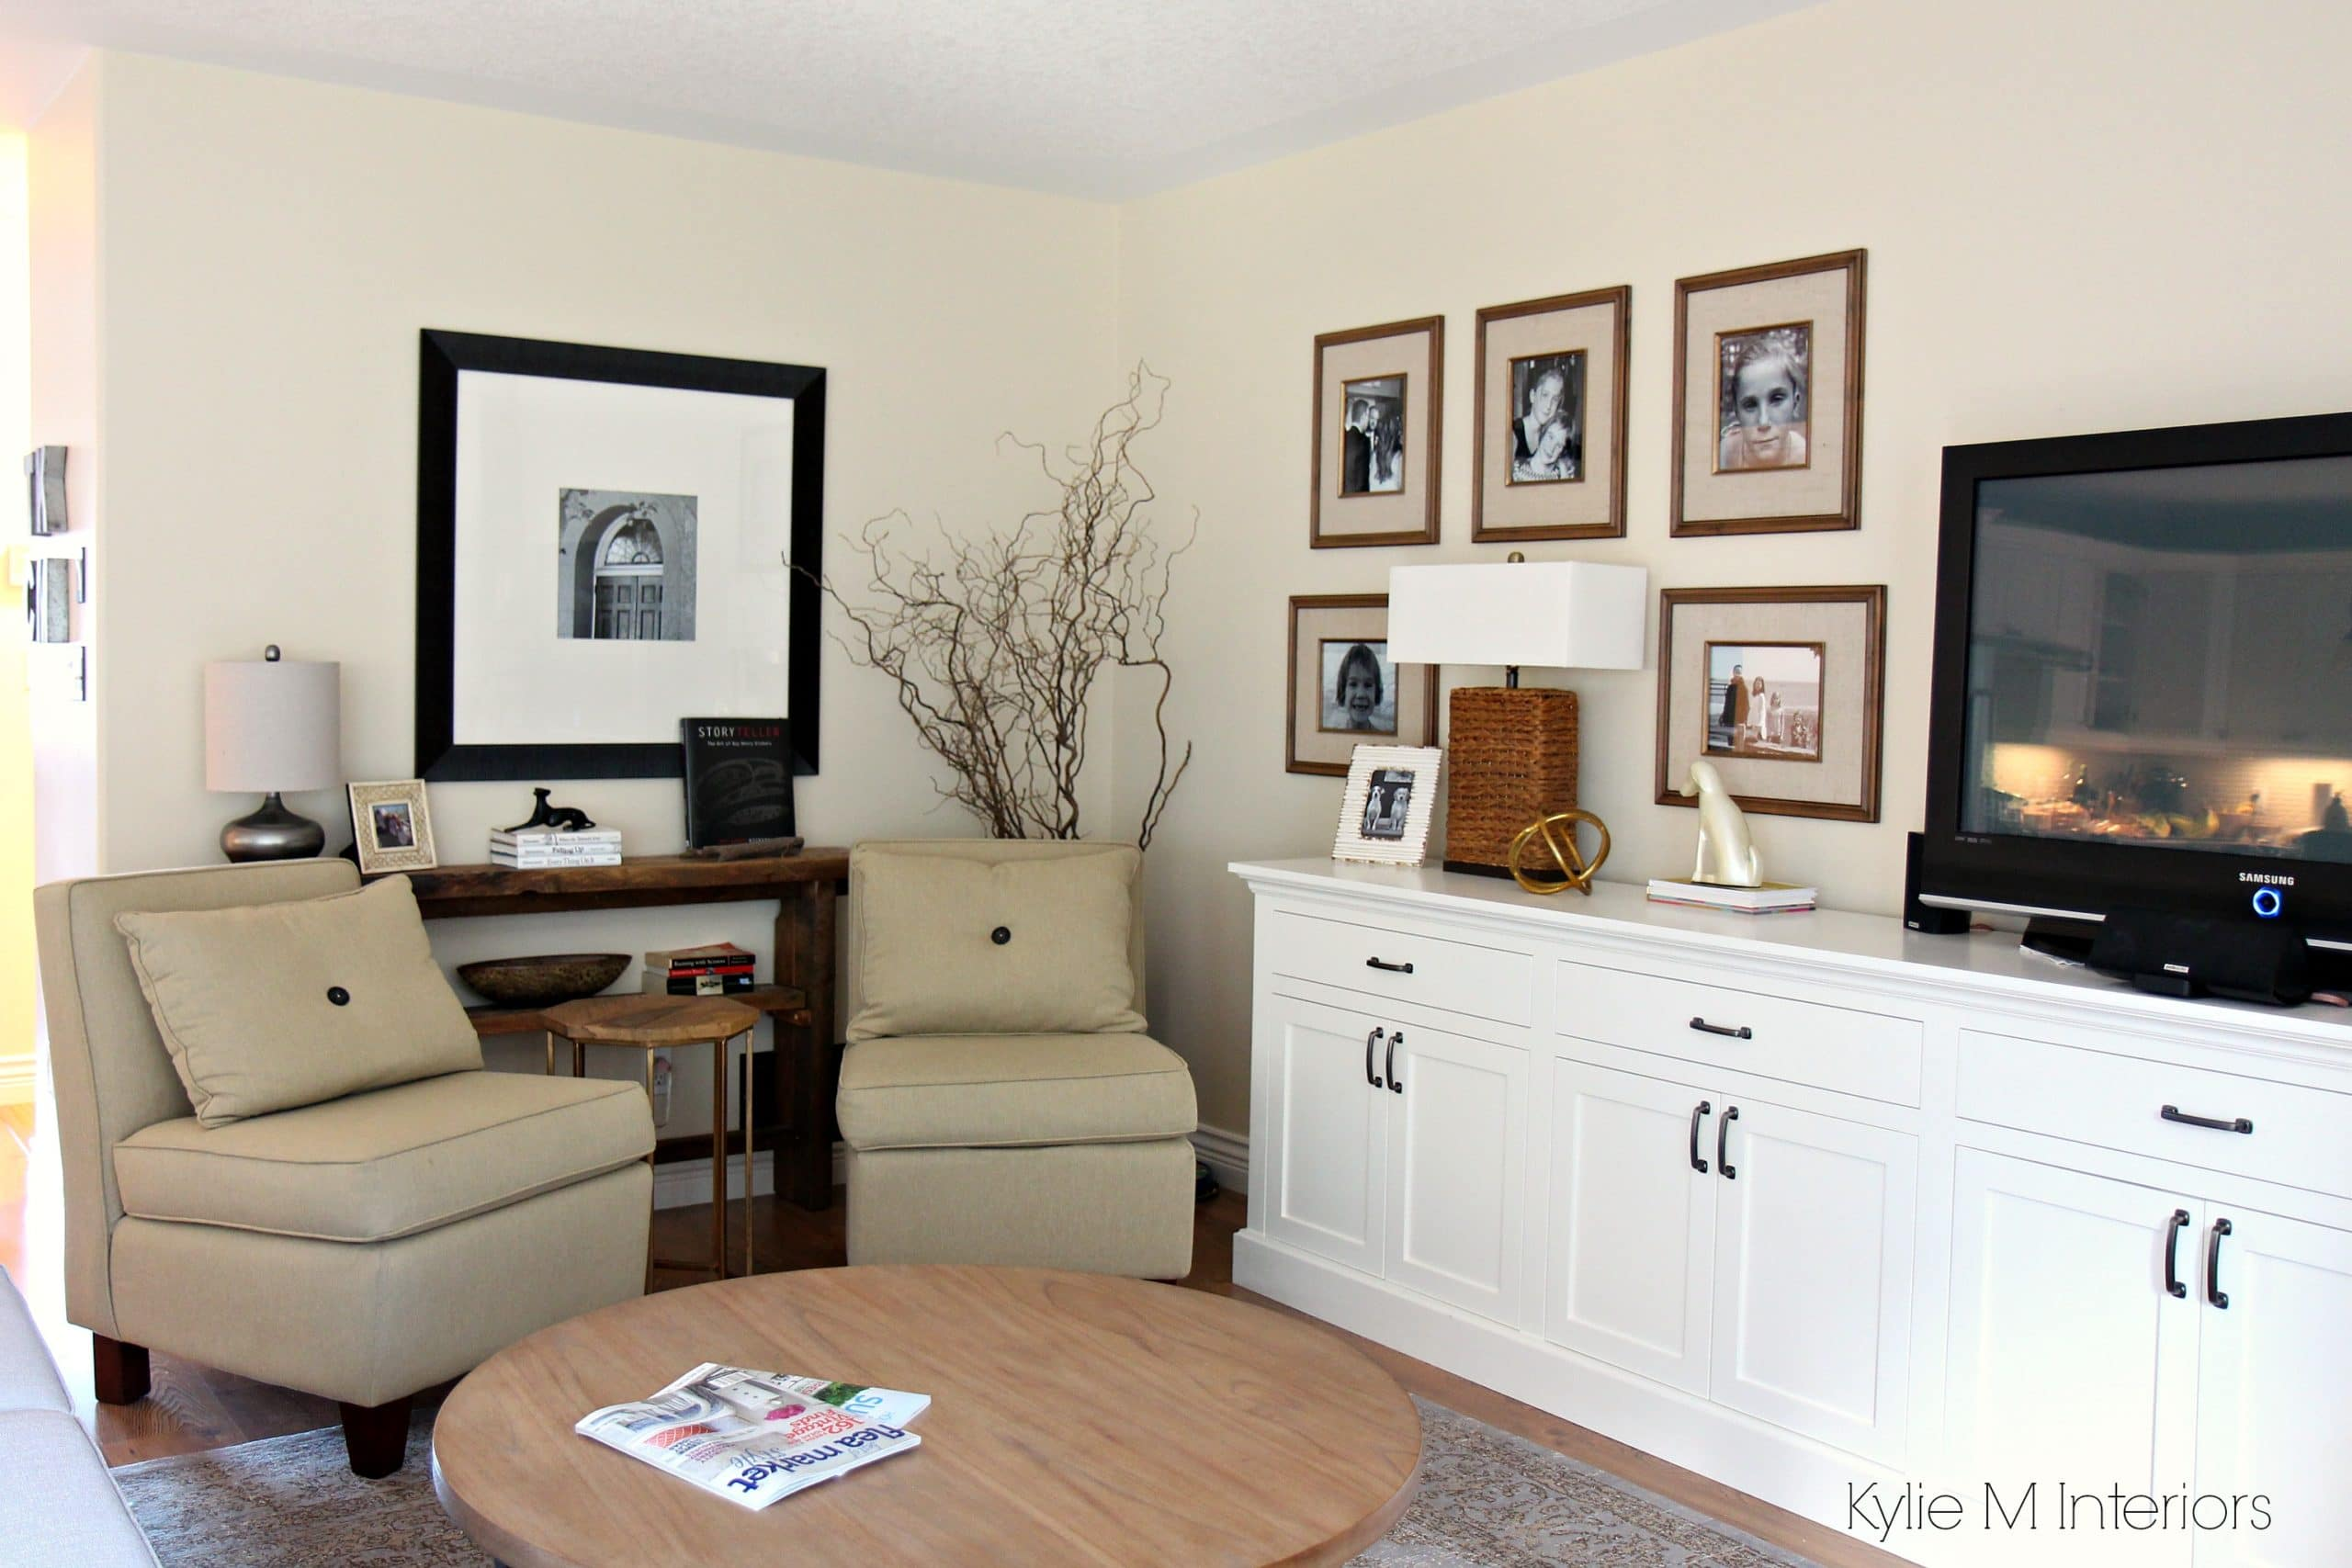 Living room layout with 2 chairs, family photo gallery ...